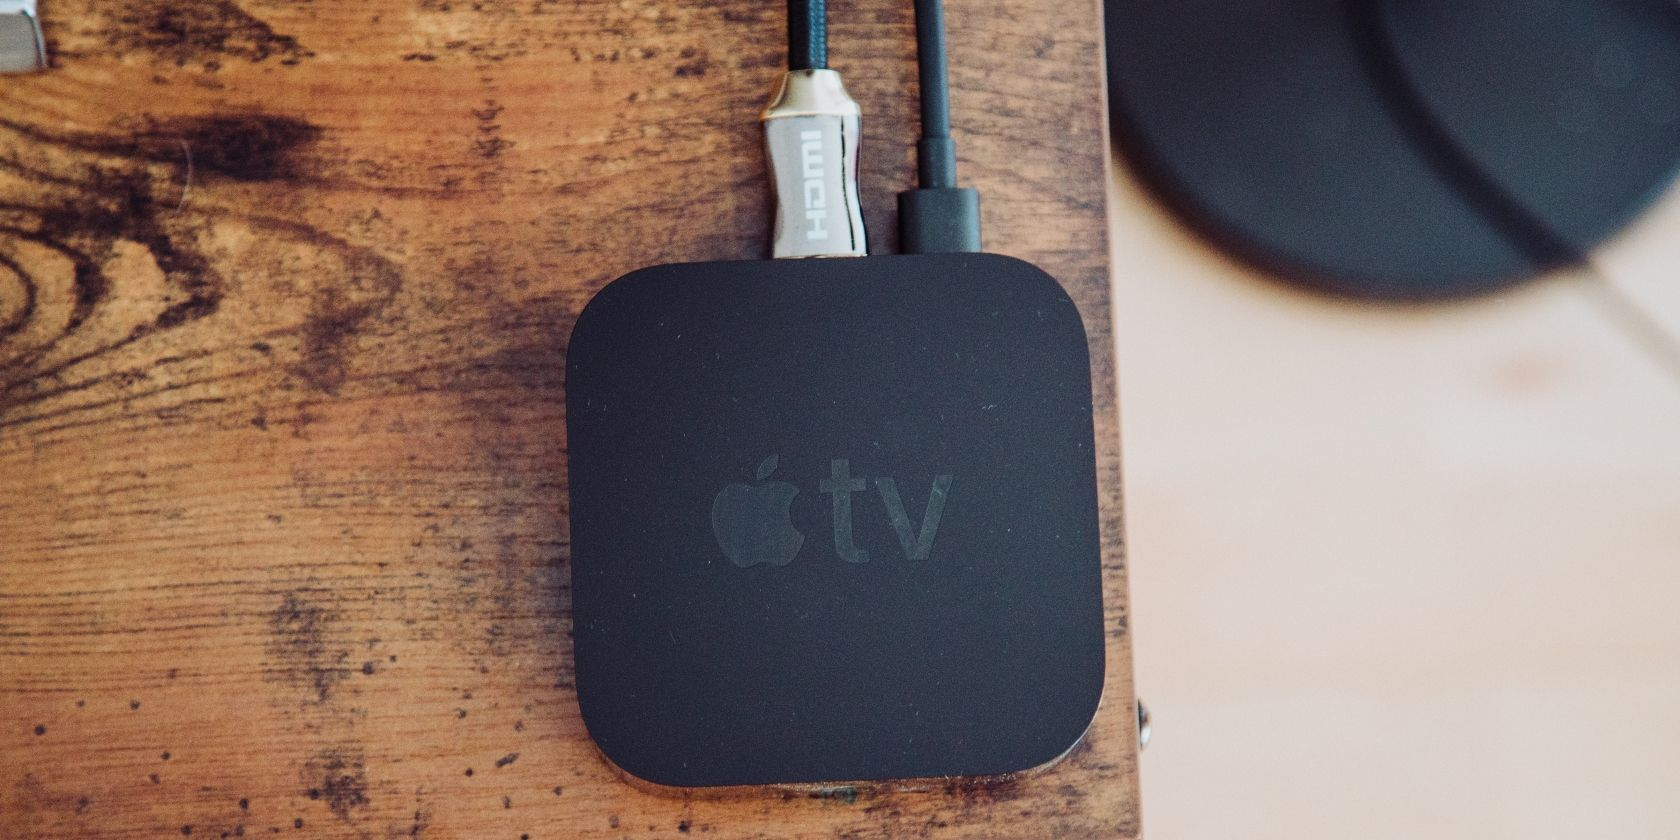 How to Watch YouTube on an Older Apple TV